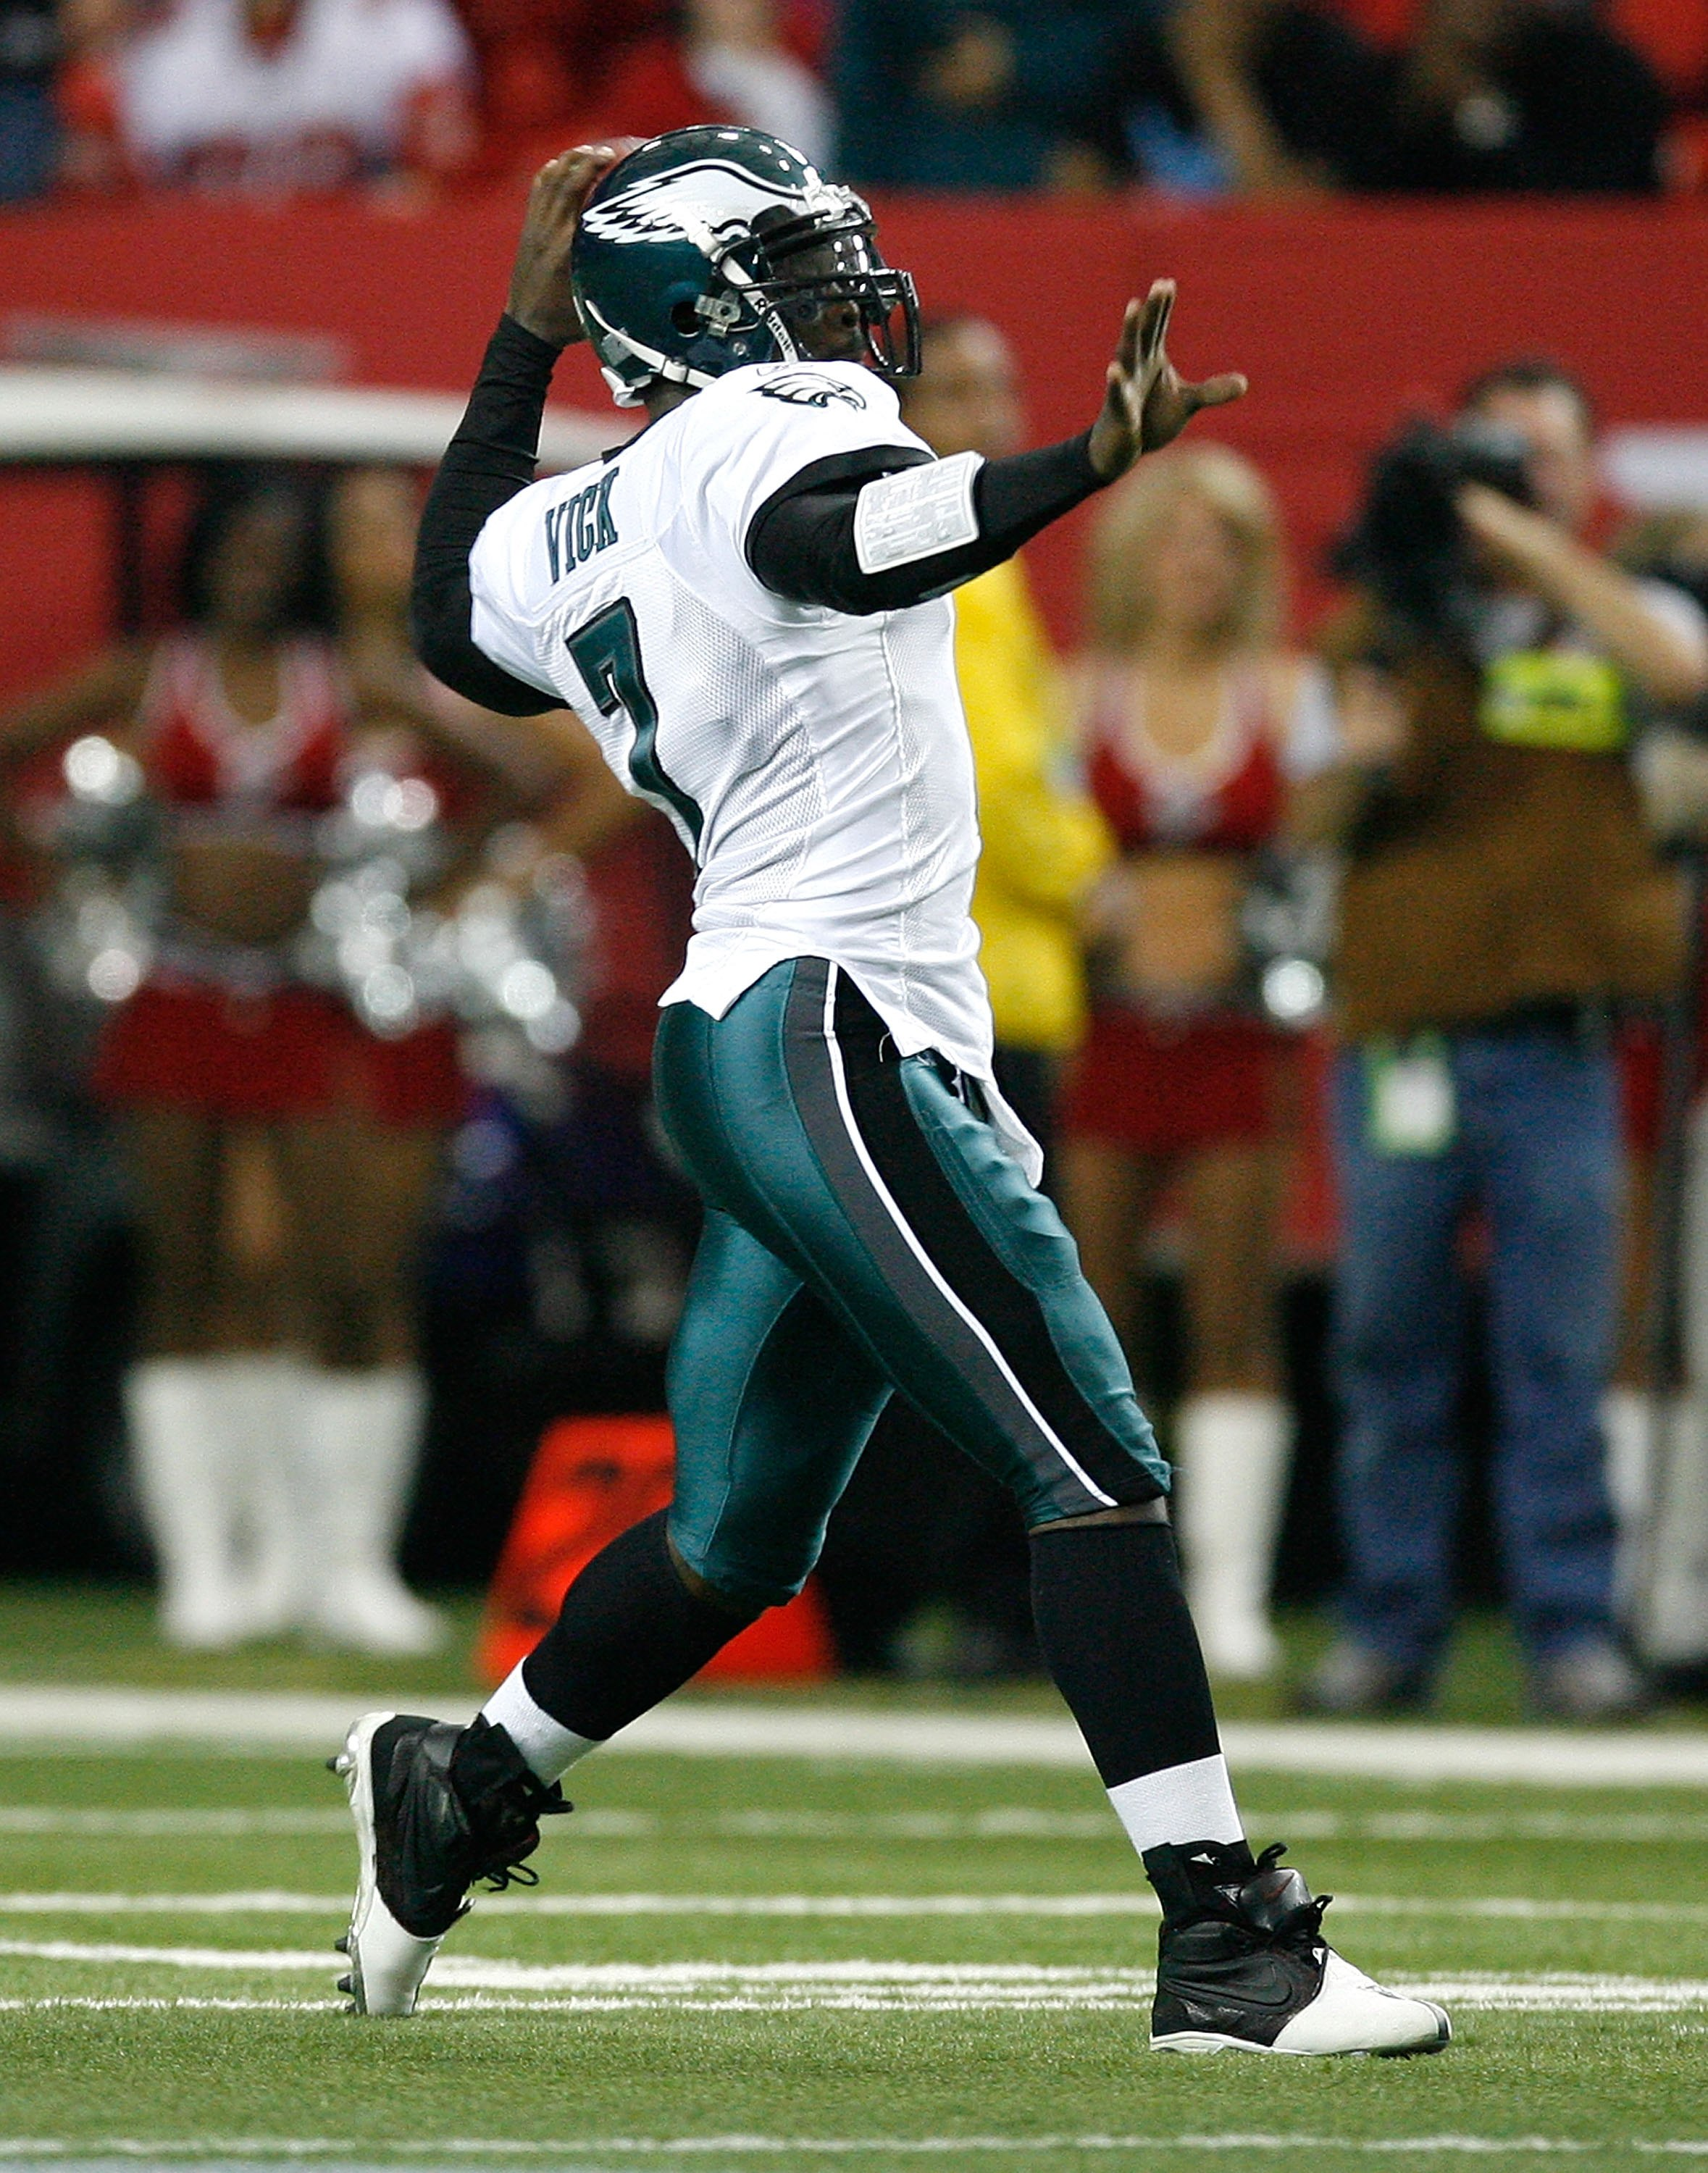 ATLANTA - DECEMBER 06:  Michael Vick #7 of the Philadelphia Eagles against the Atlanta Falcons at Georgia Dome on December 6, 2009 in Atlanta, Georgia.  (Photo by Kevin C. Cox/Getty Images)